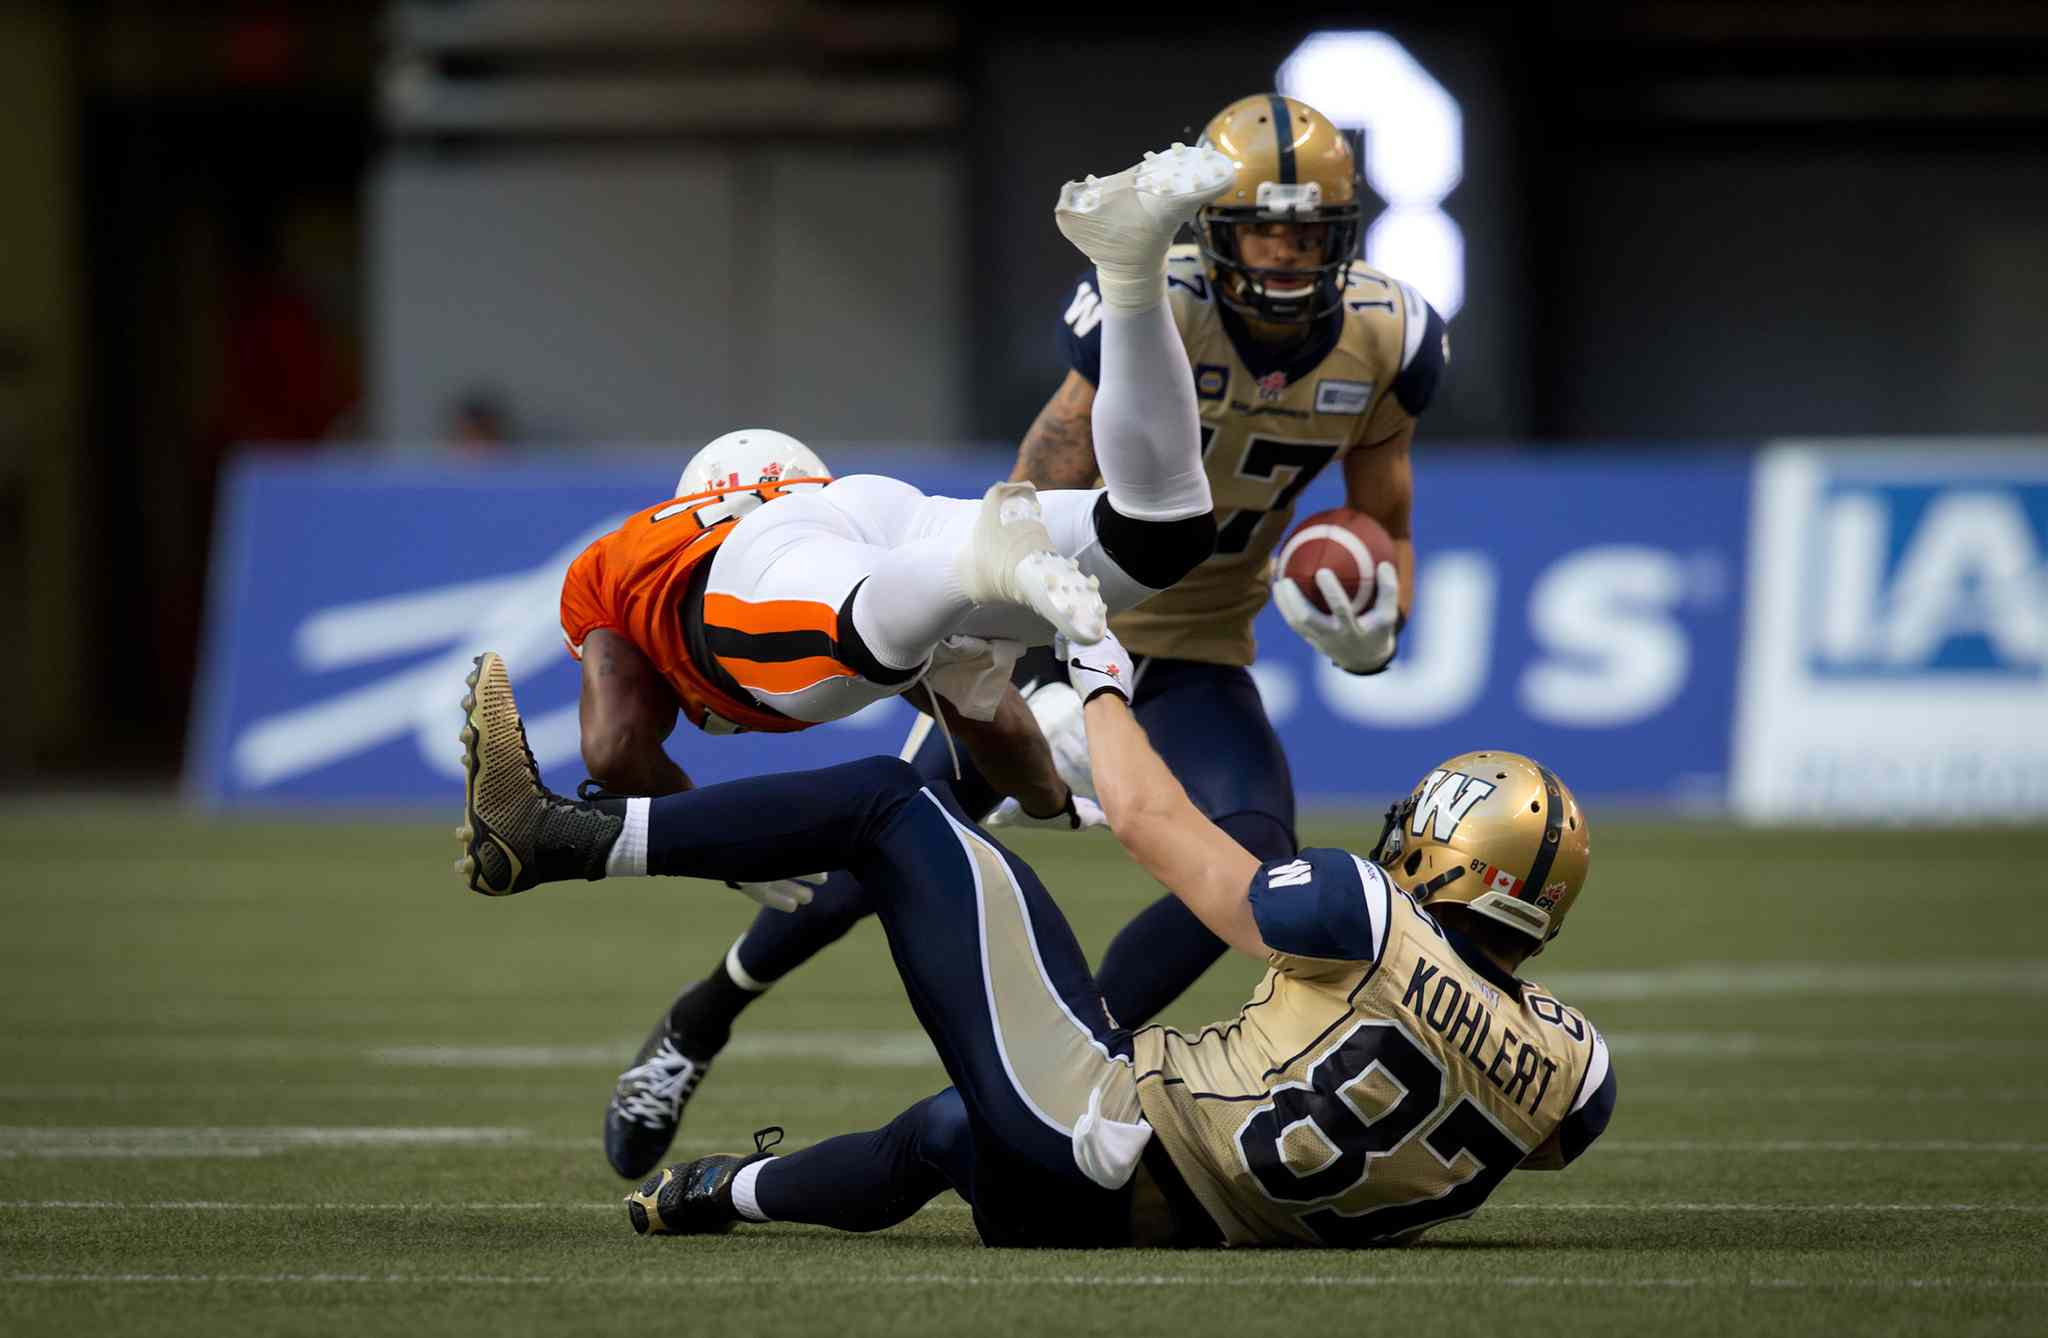 B.C. Lions' Dante Marsh, left, collides with Winnipeg Blue Bombers' Rory Kohlert, bottom, as Nick Moore, back, carries the ball during the first half of Friday's game.